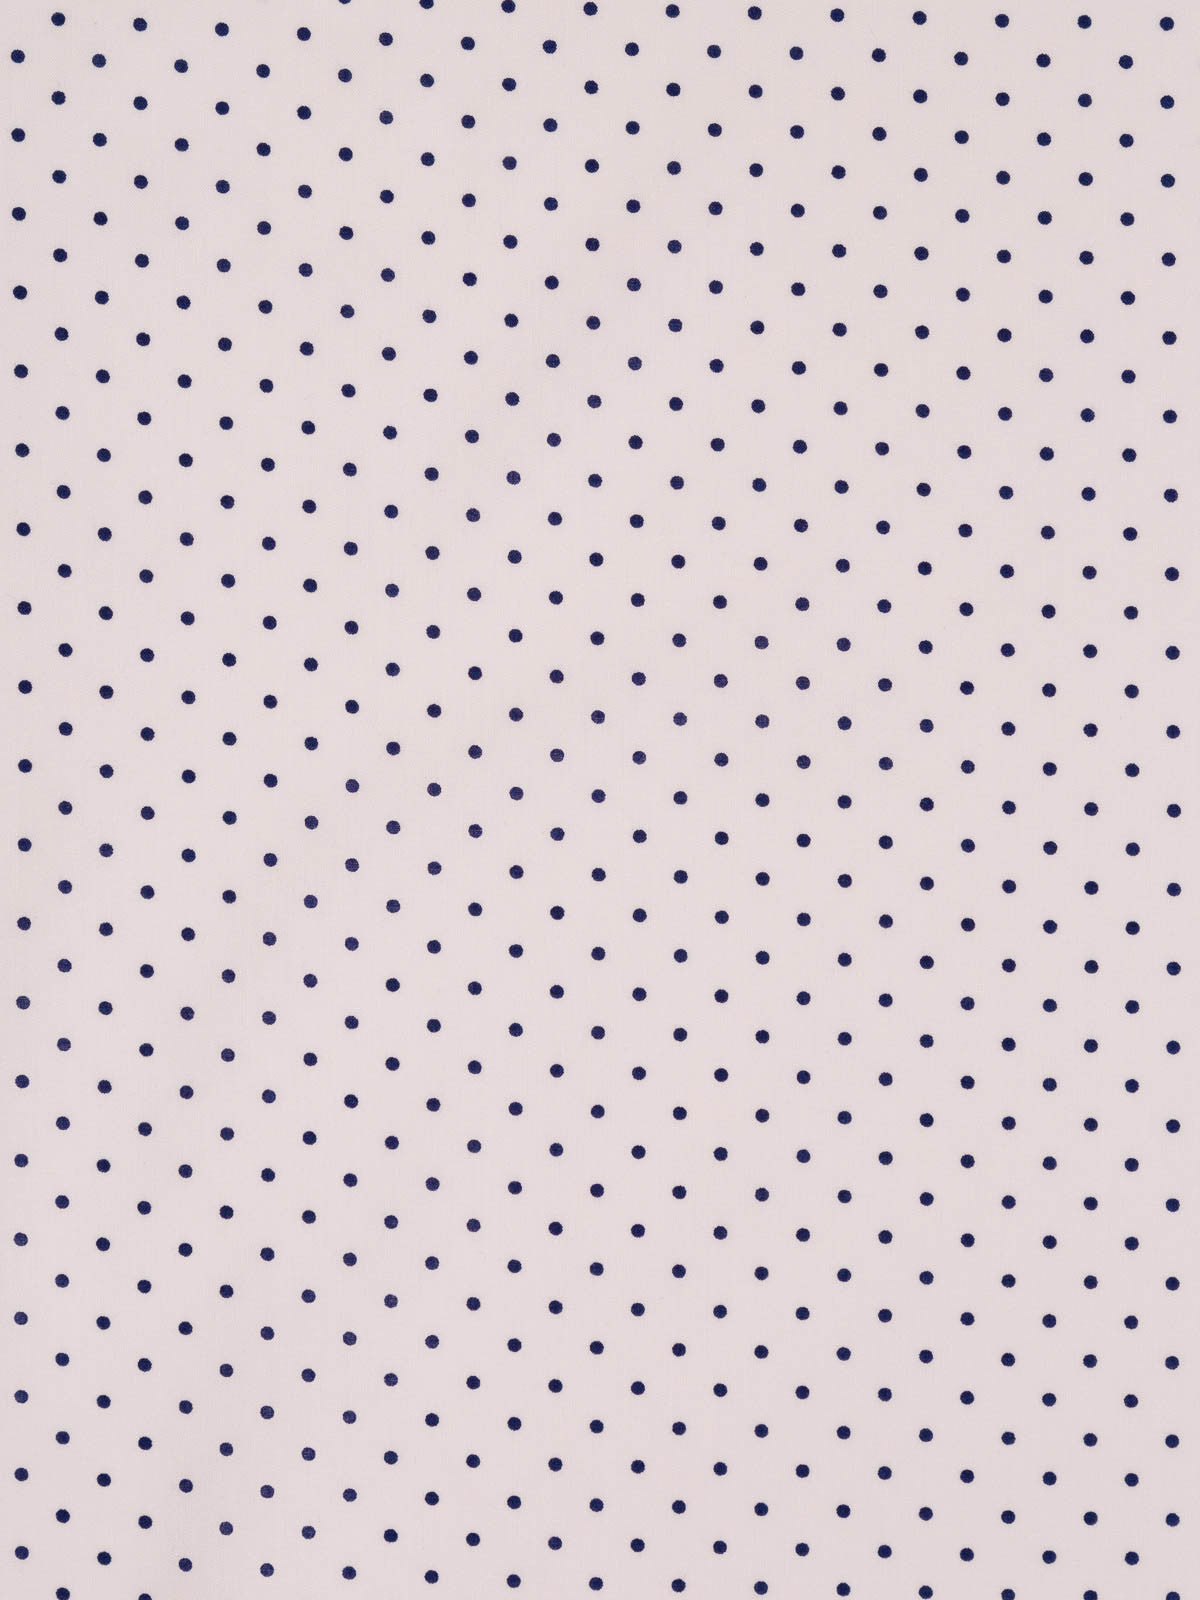 Cotton Lawn Fabric Polka Dot Print Baby Pink Amp Navy